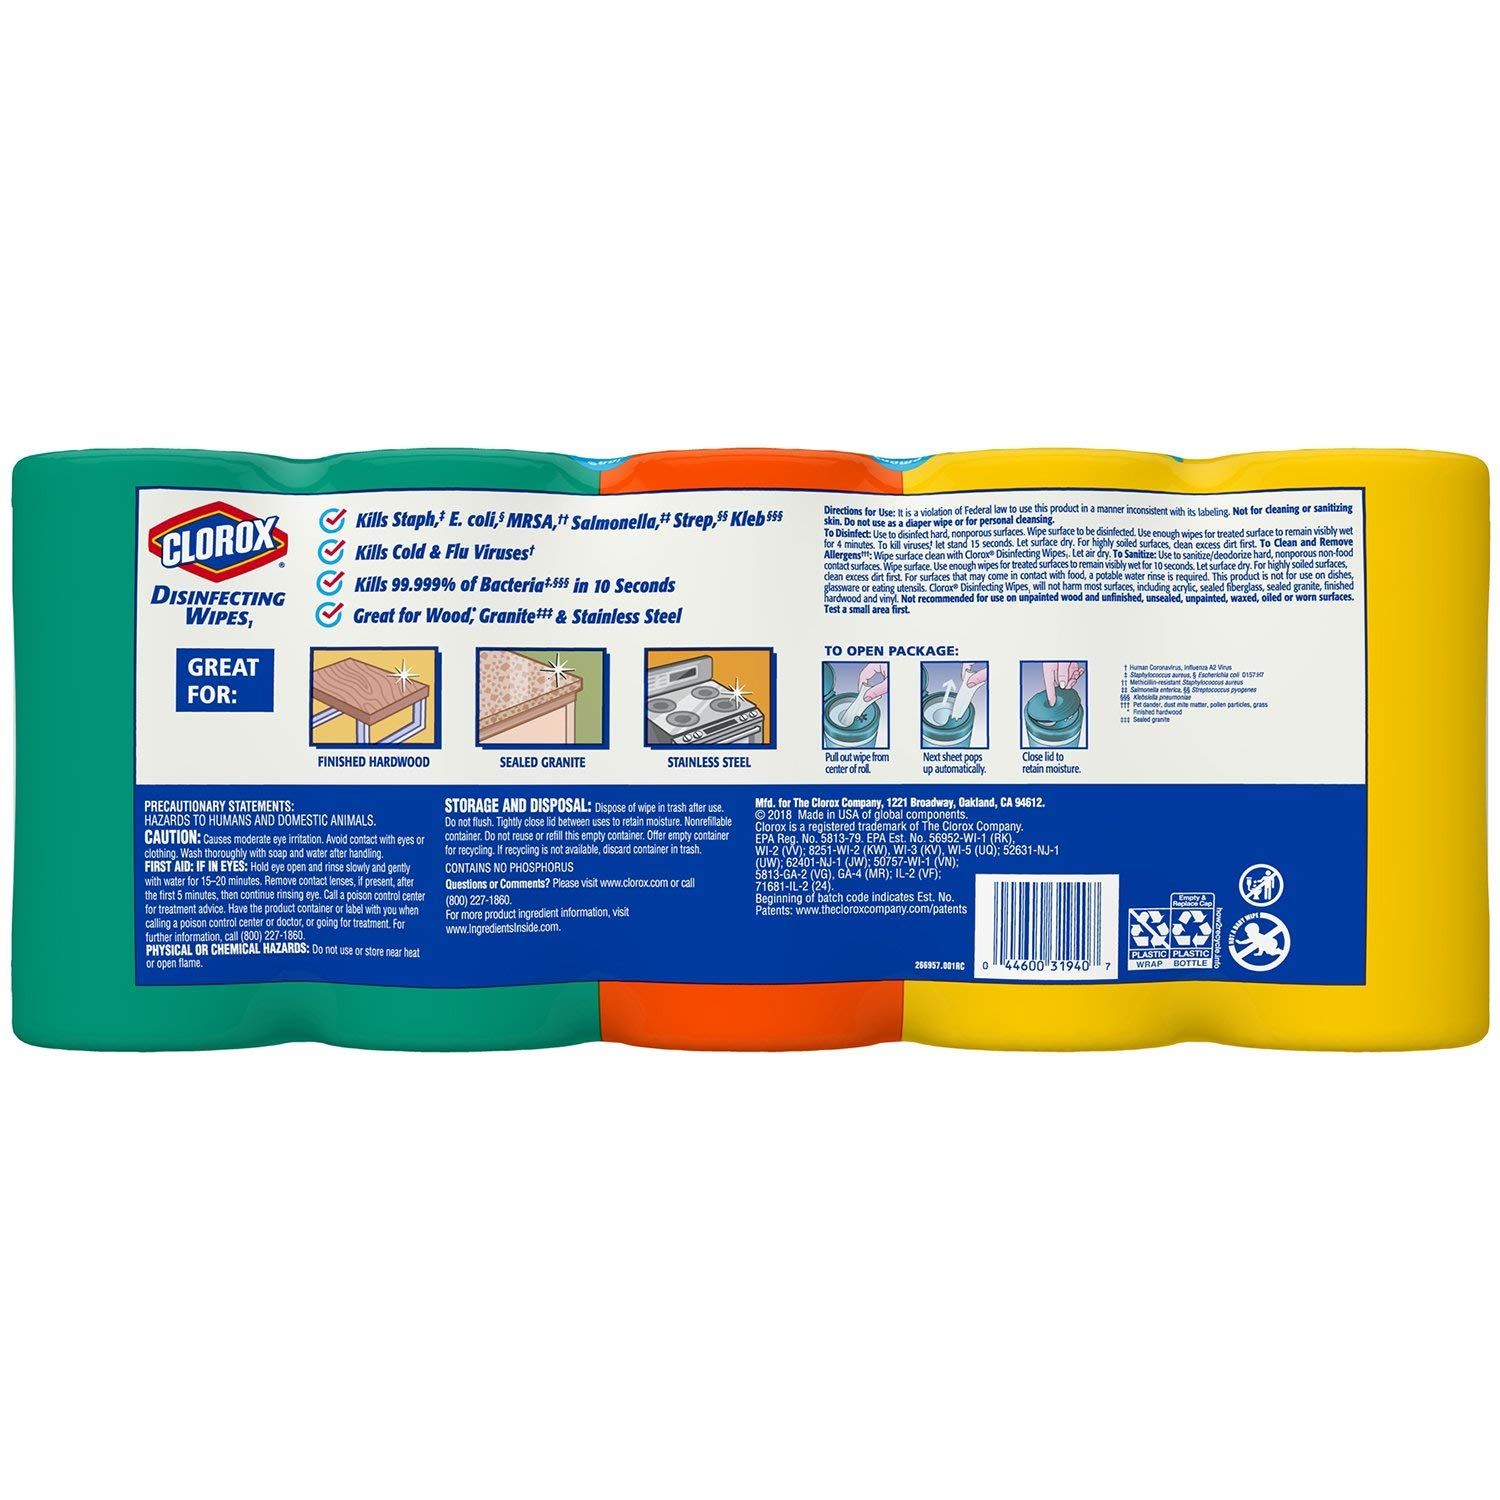 Clorox Disinfecting Wipes 5-pk., 390 Total Wipes Variety Pack